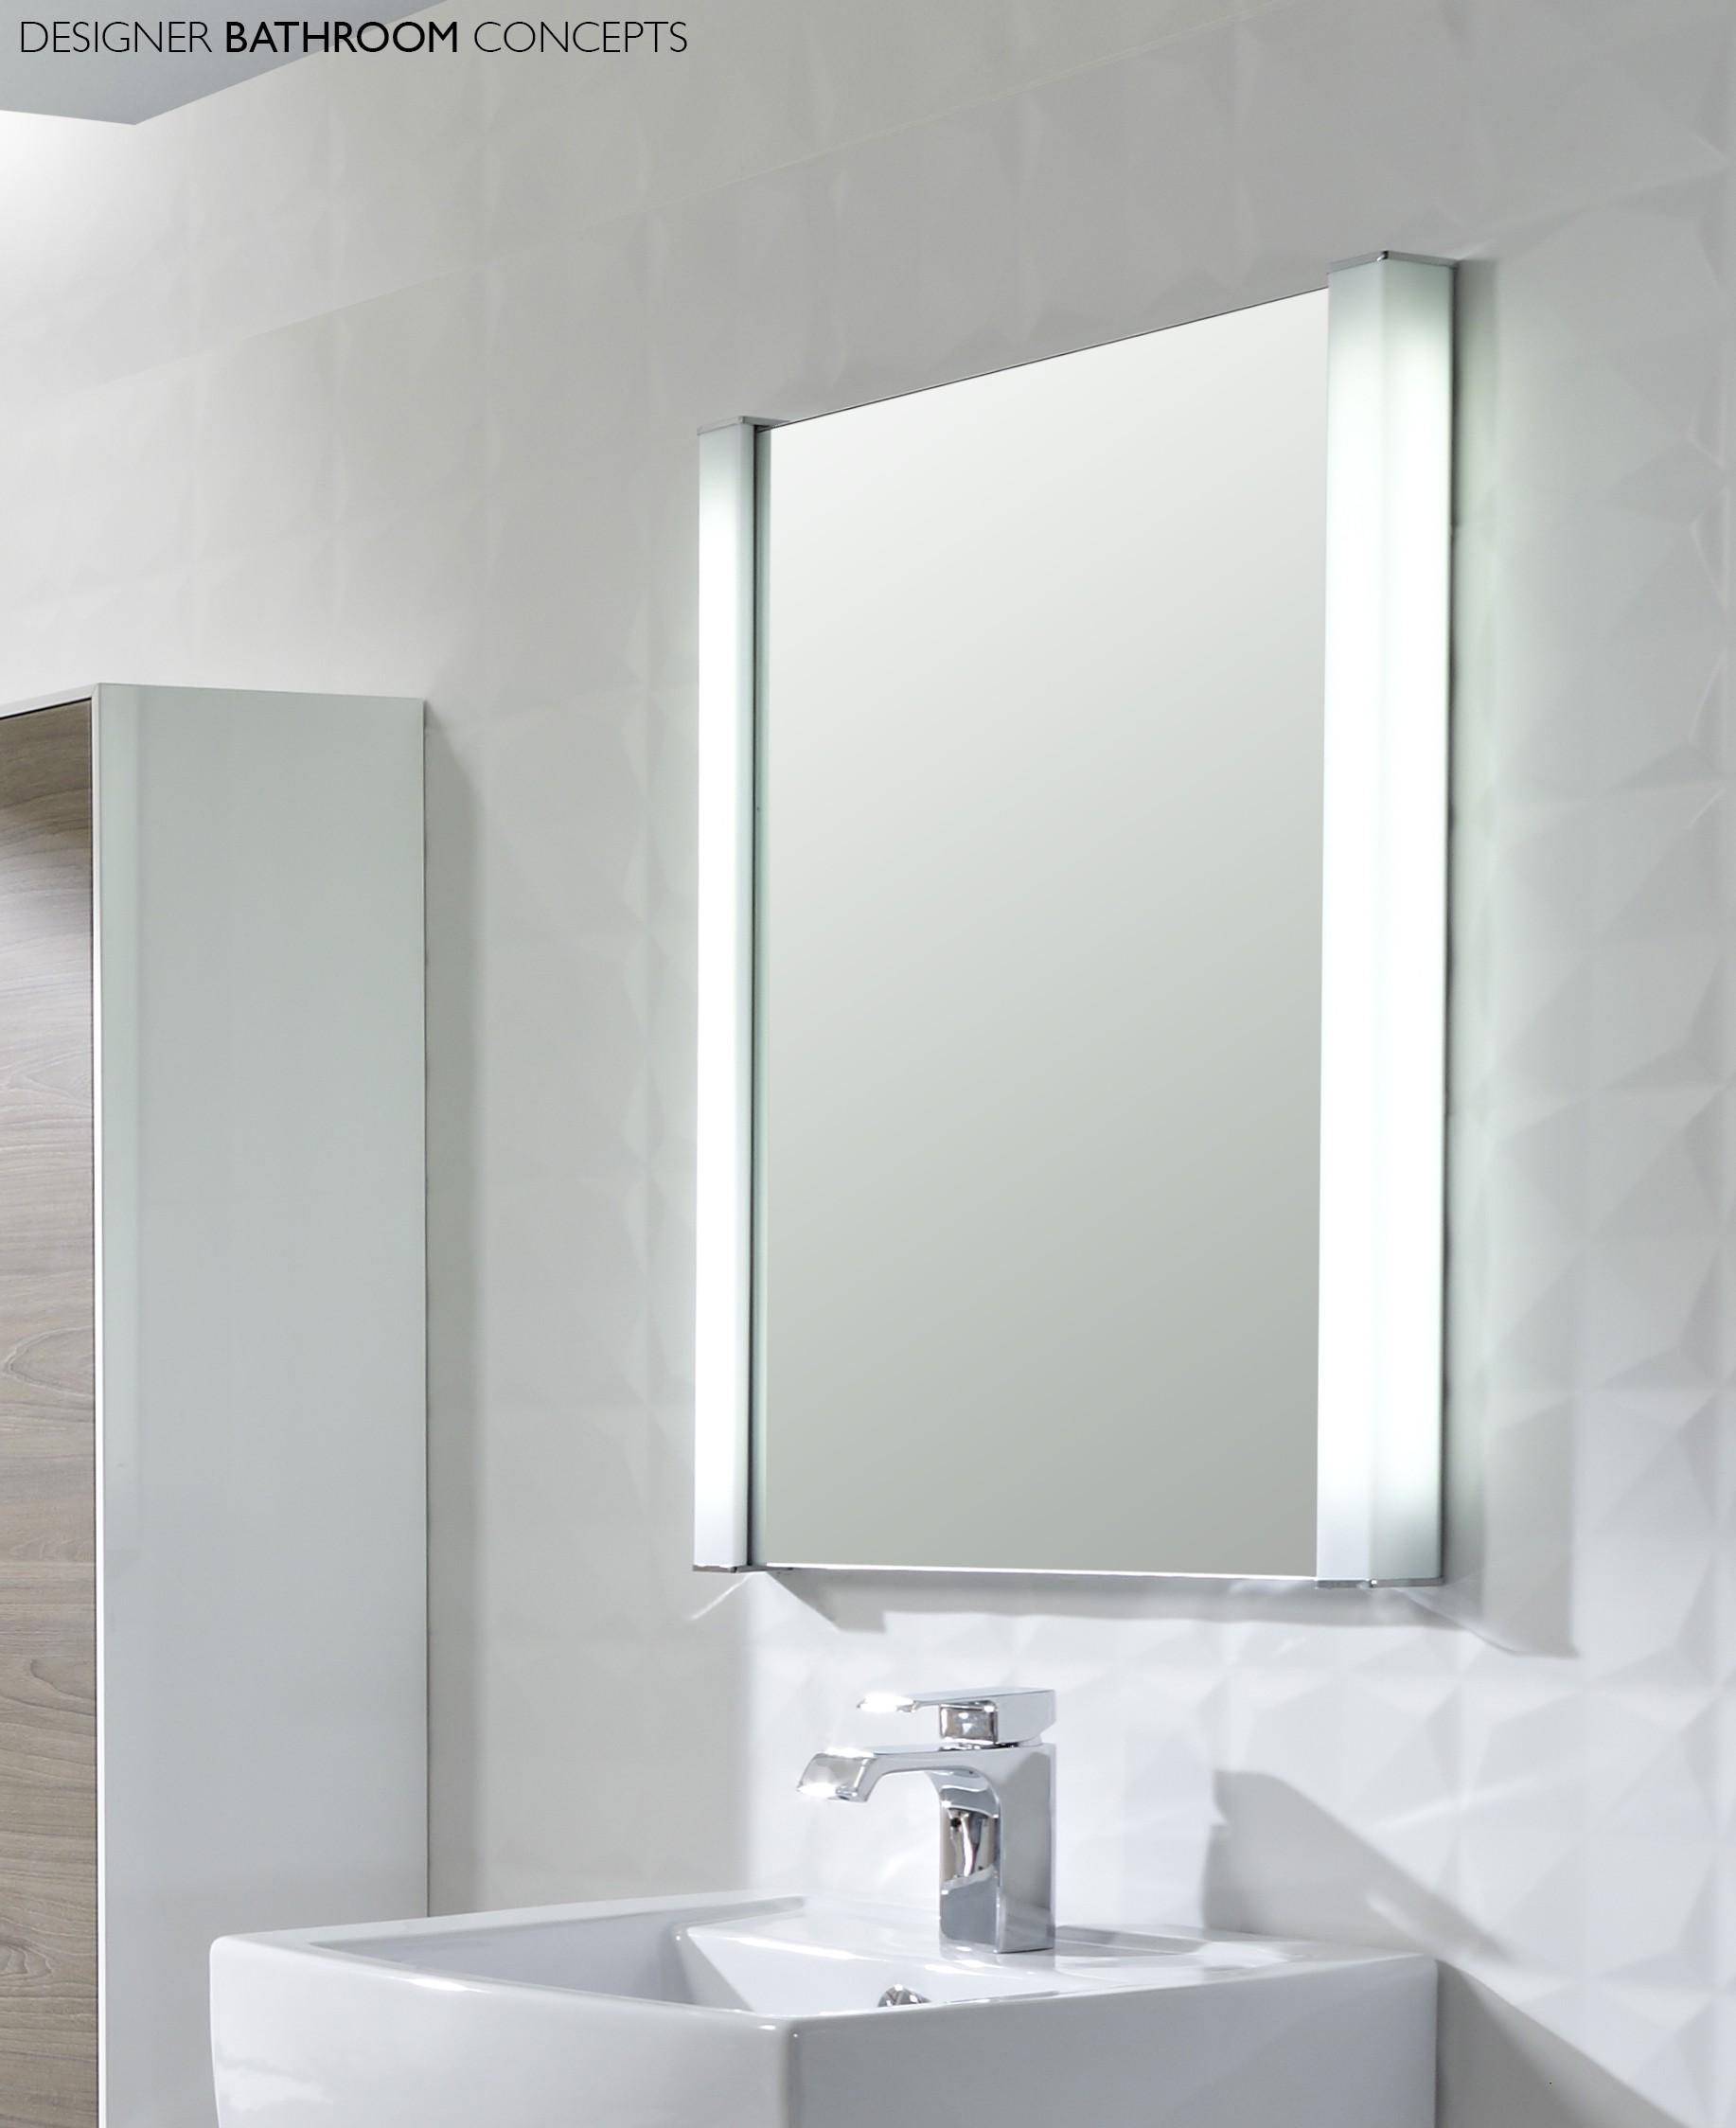 Bathroom : Lighted Bathroom Mirror 32 Wall Mounted Lighted Intended For Bathroom Mirrors With Led Lights (Image 6 of 20)